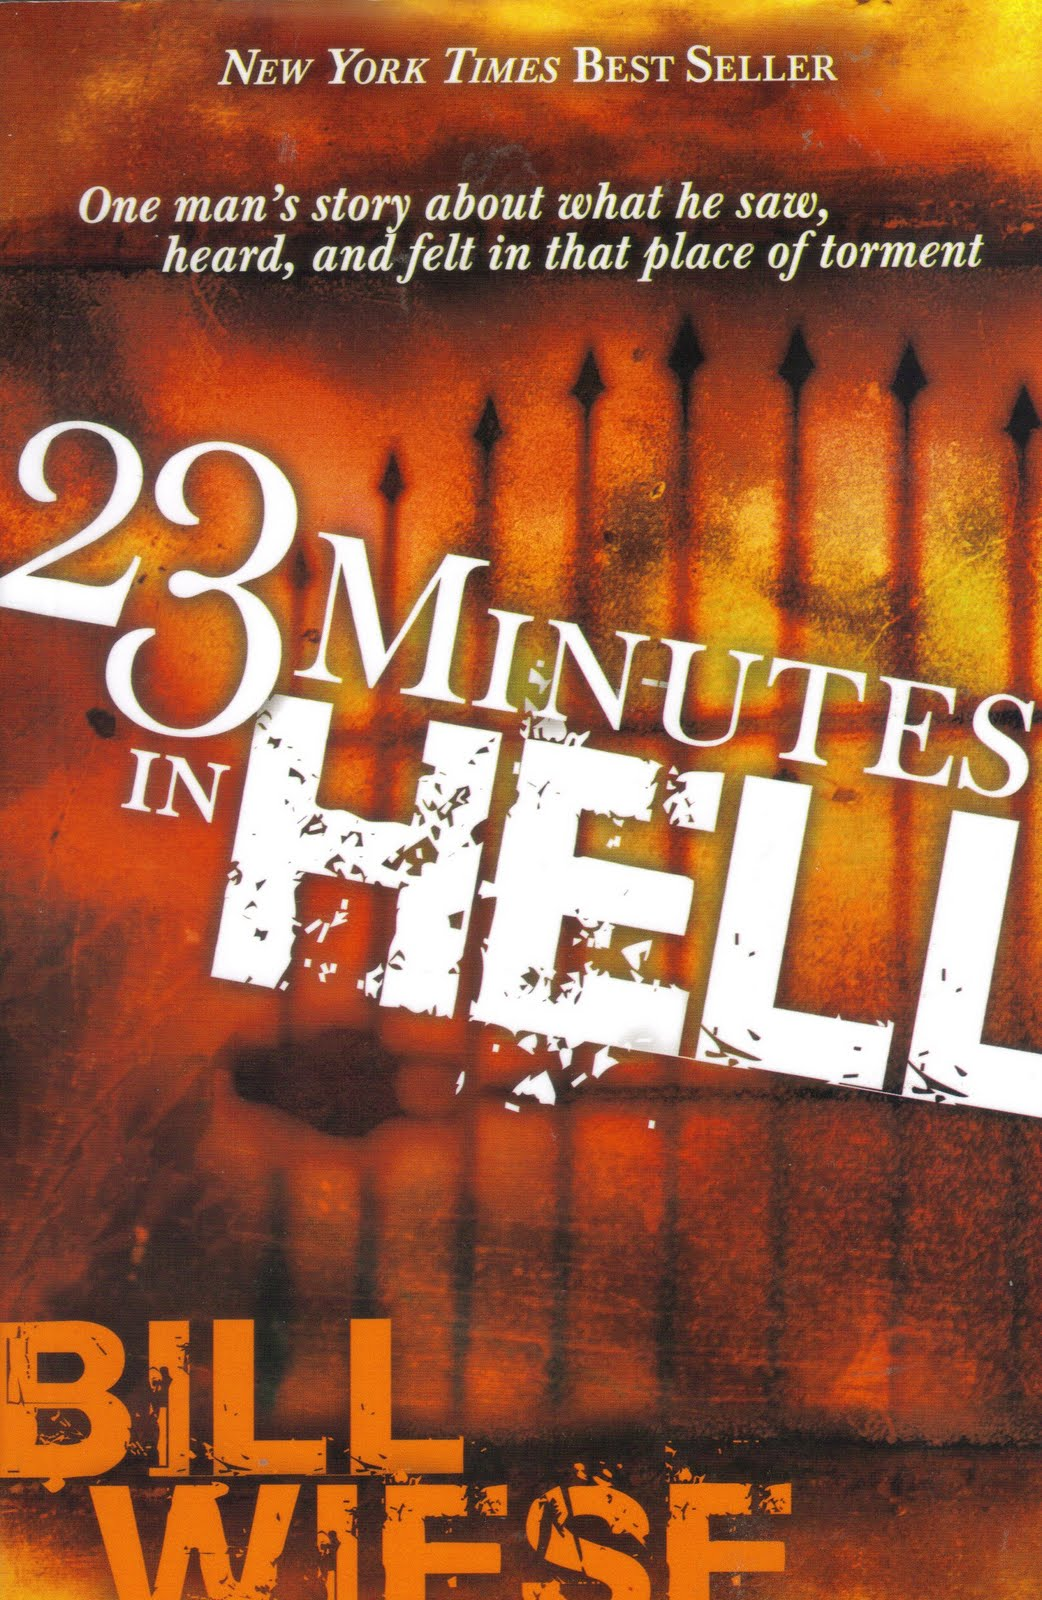 8 minutes of hell jizznation 10